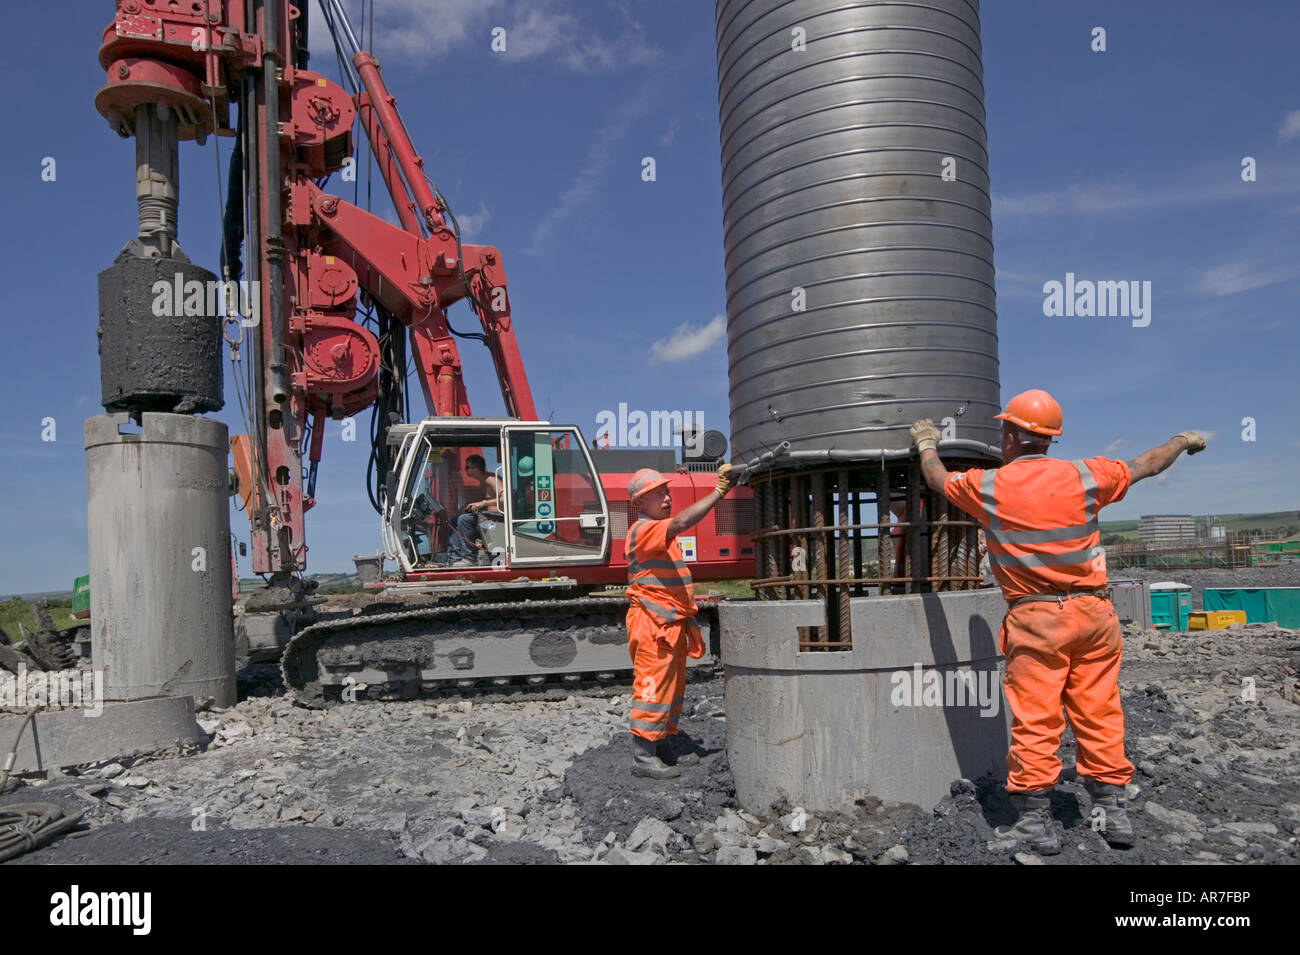 Workers install steel reinforced cage into excavated pile. In the background, a massive piling rig lifts spoil from - Stock Image